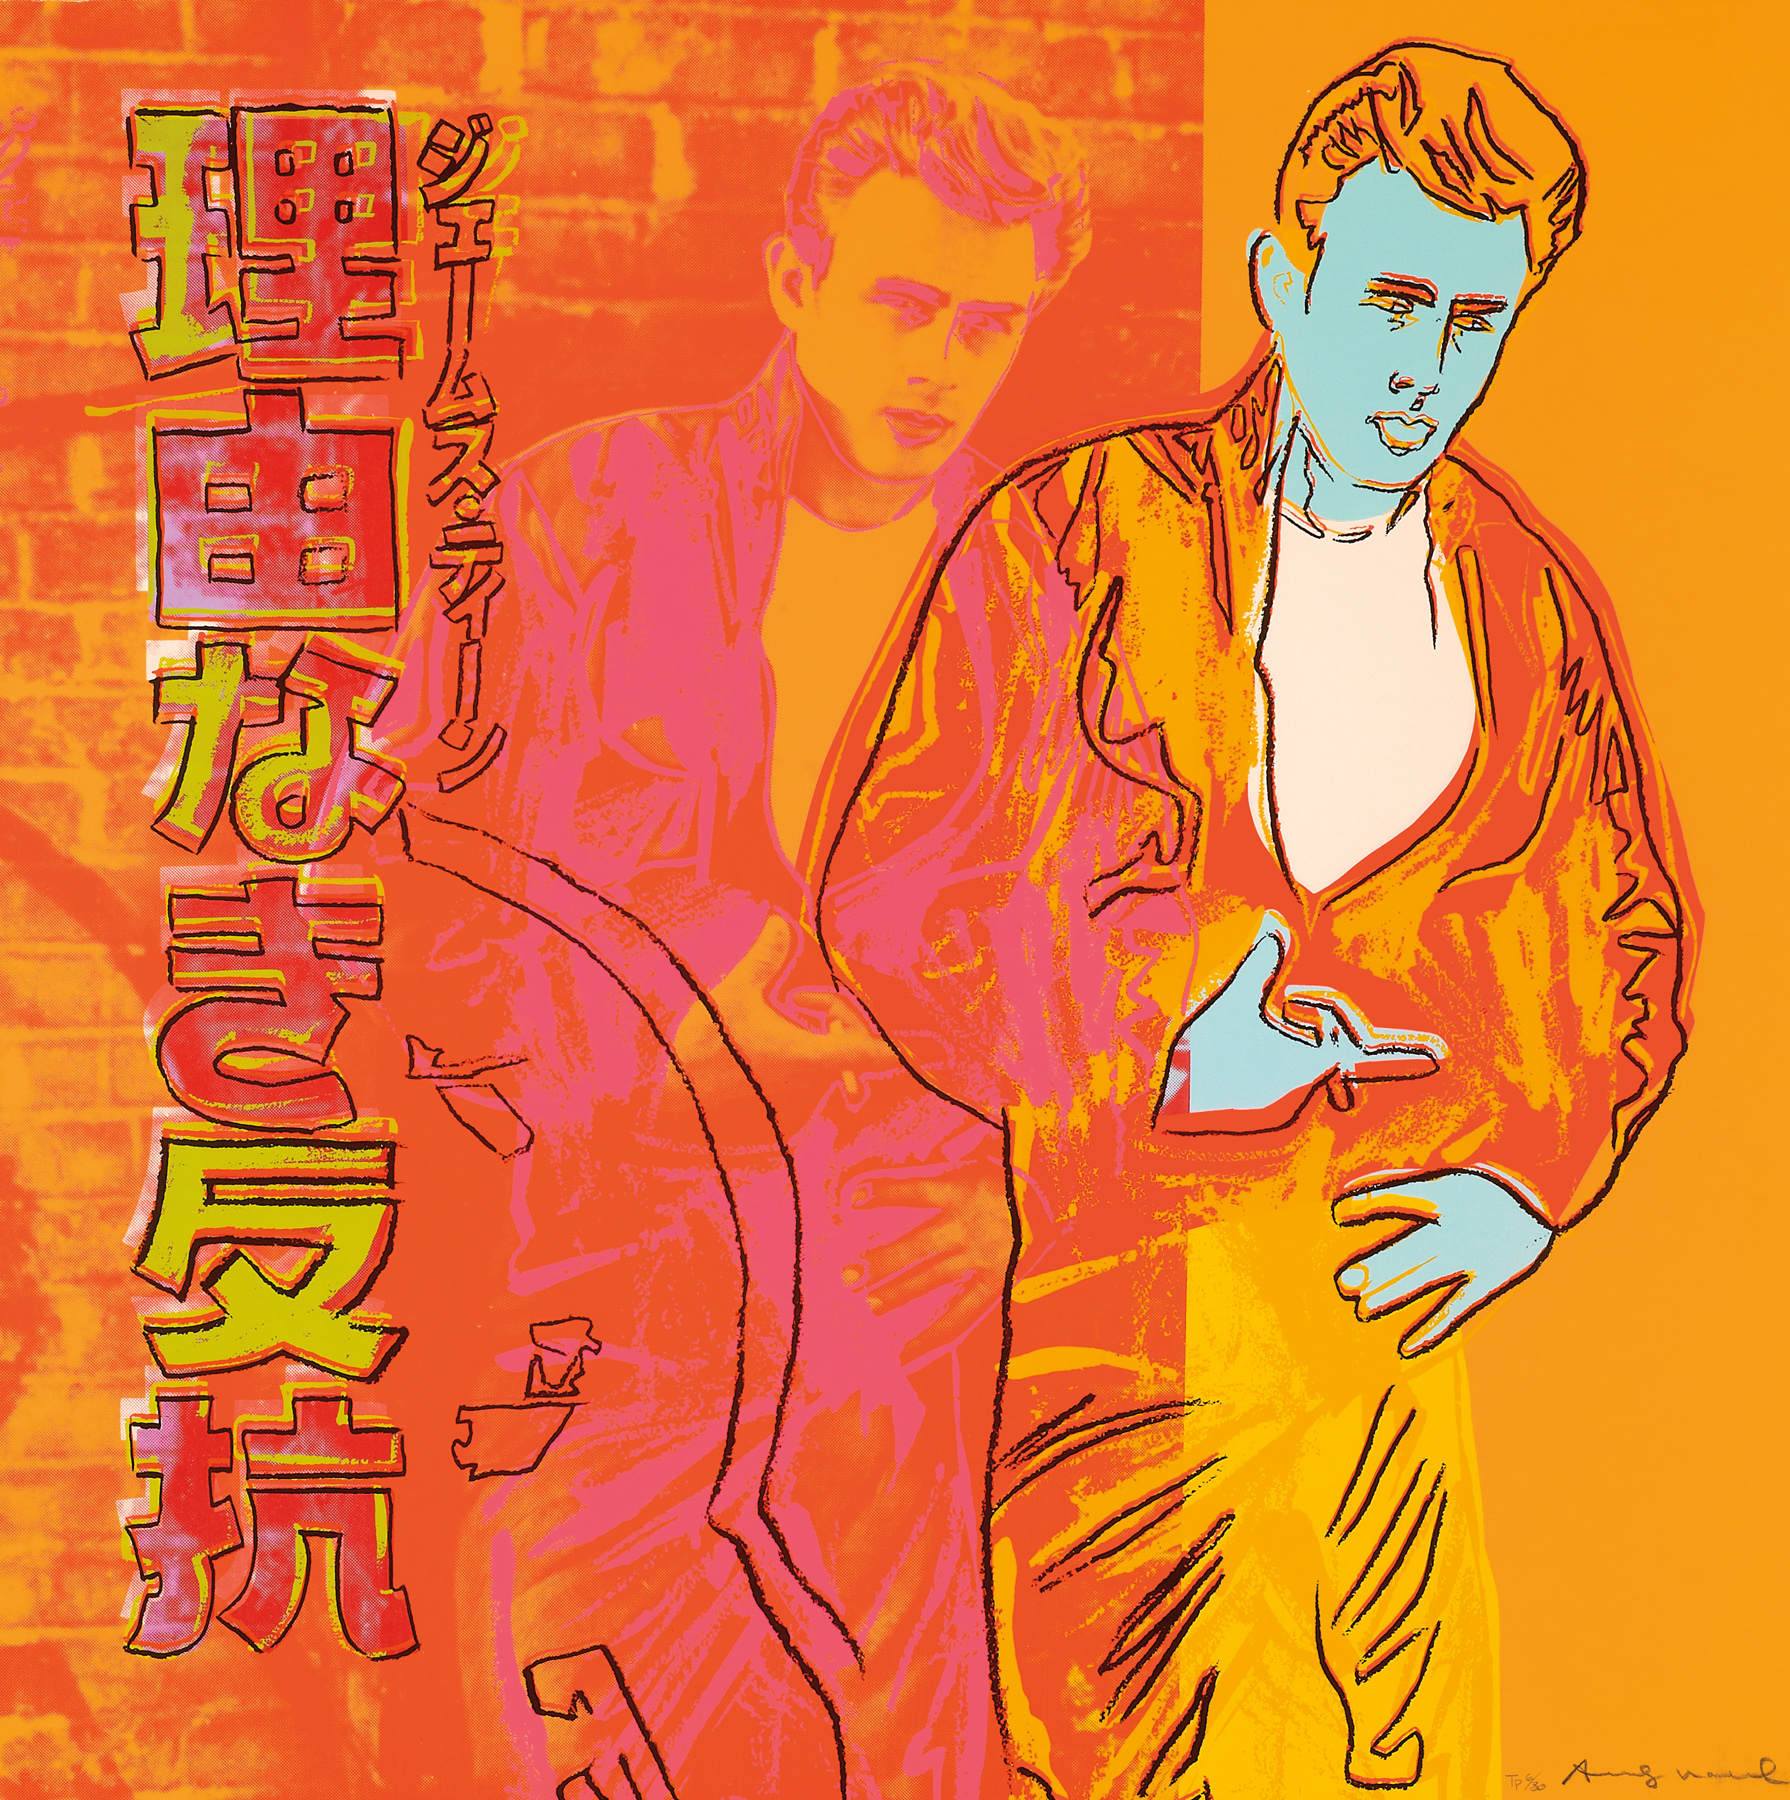 Rebel Without a Cause, 1985 (#355, Ads), unique trial-proof hand-signed screenprint. From the Ads portfolio of ten screenprint's on Lenox Museum board, this amazingly vibrant Rebel Without a Cause is one of just 30 unique trial proofs from the total edition of 28.